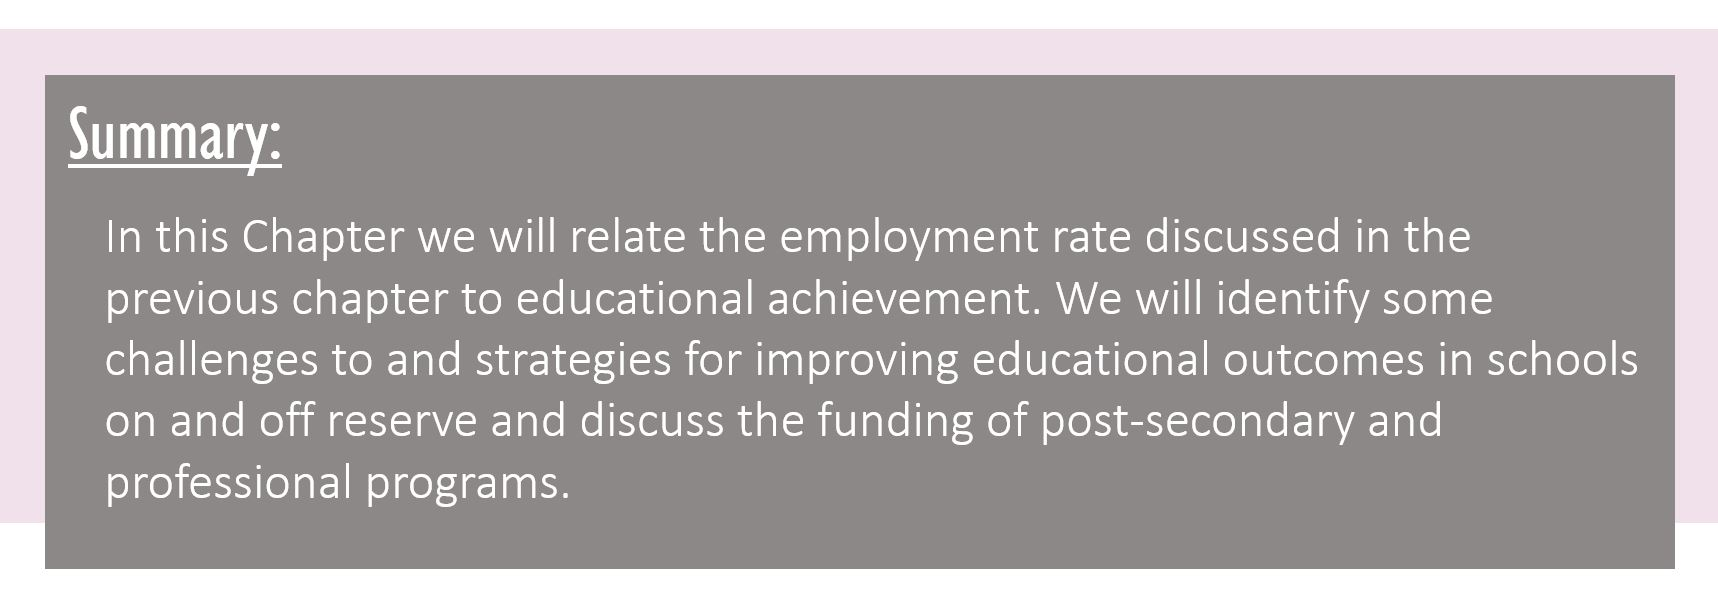 Summary: In this Chapter we will relate the employment rate discussed in the previous chapter to educational achievement. We will identify some challenges to and strategies for improving educational outcomes in schools on and off reserve and discuss the funding of post-secondary and professional programs.